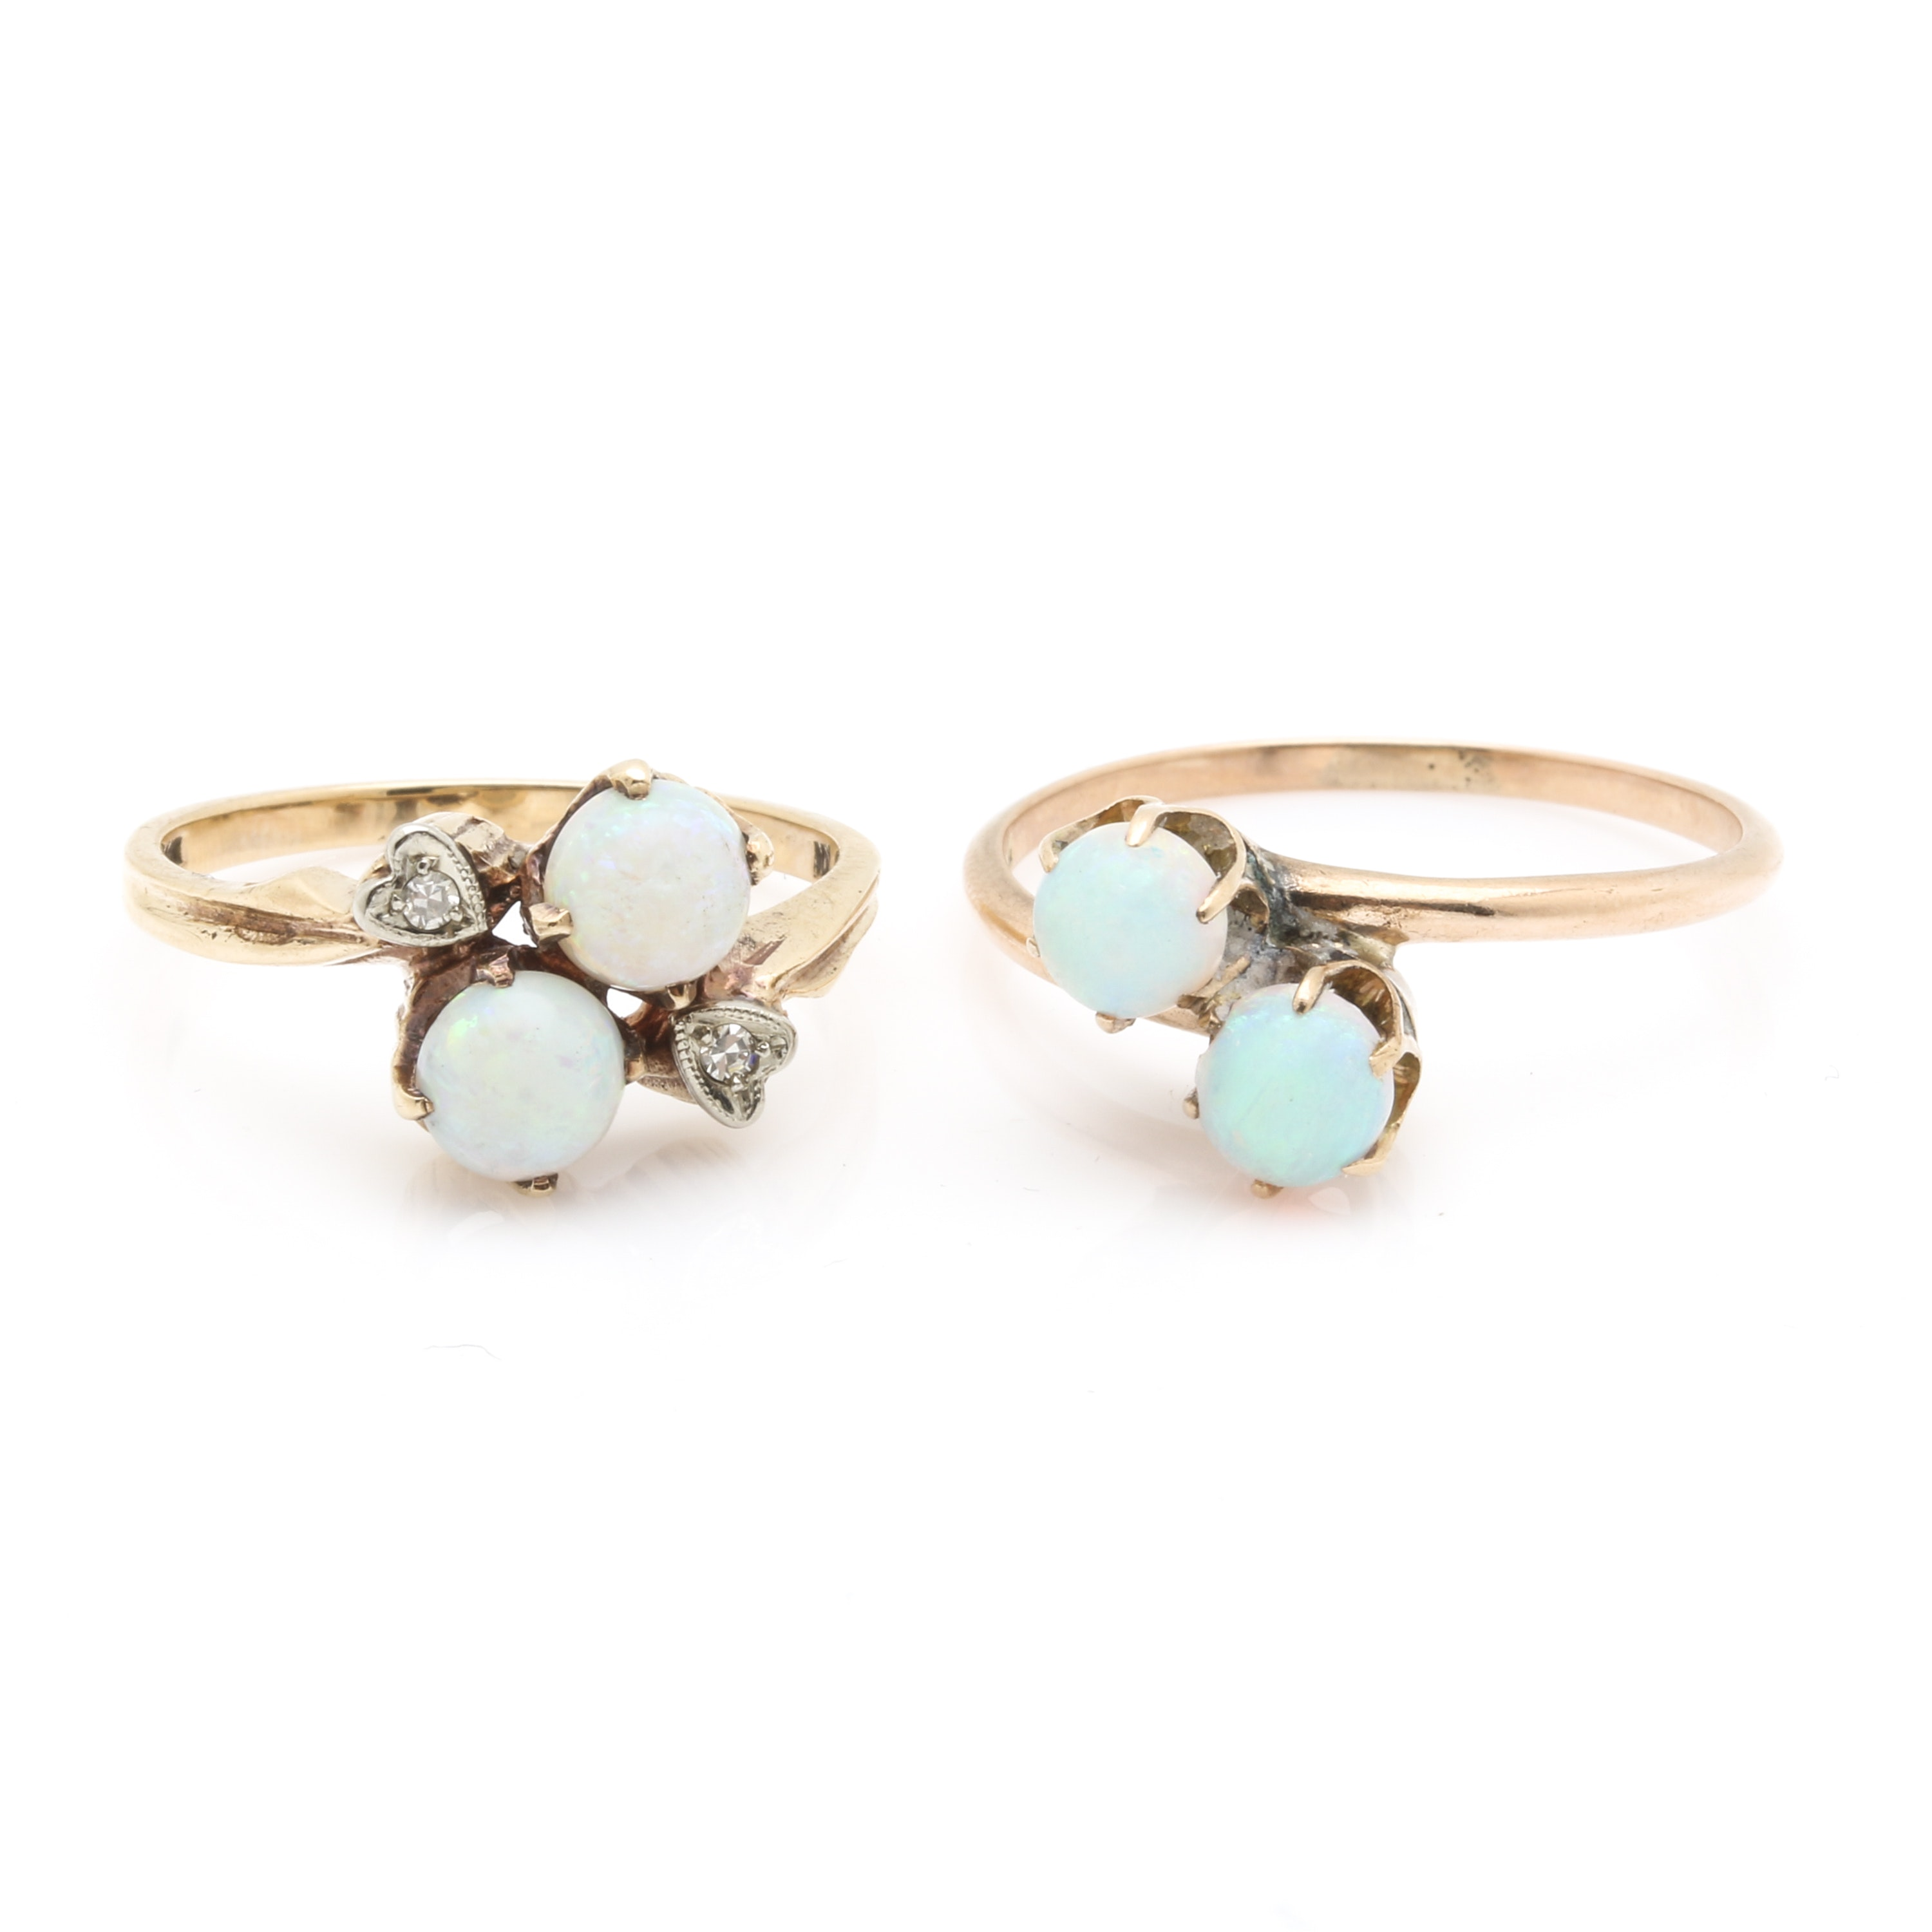 10K Yellow Gold Diamond and Opal Ring Selection